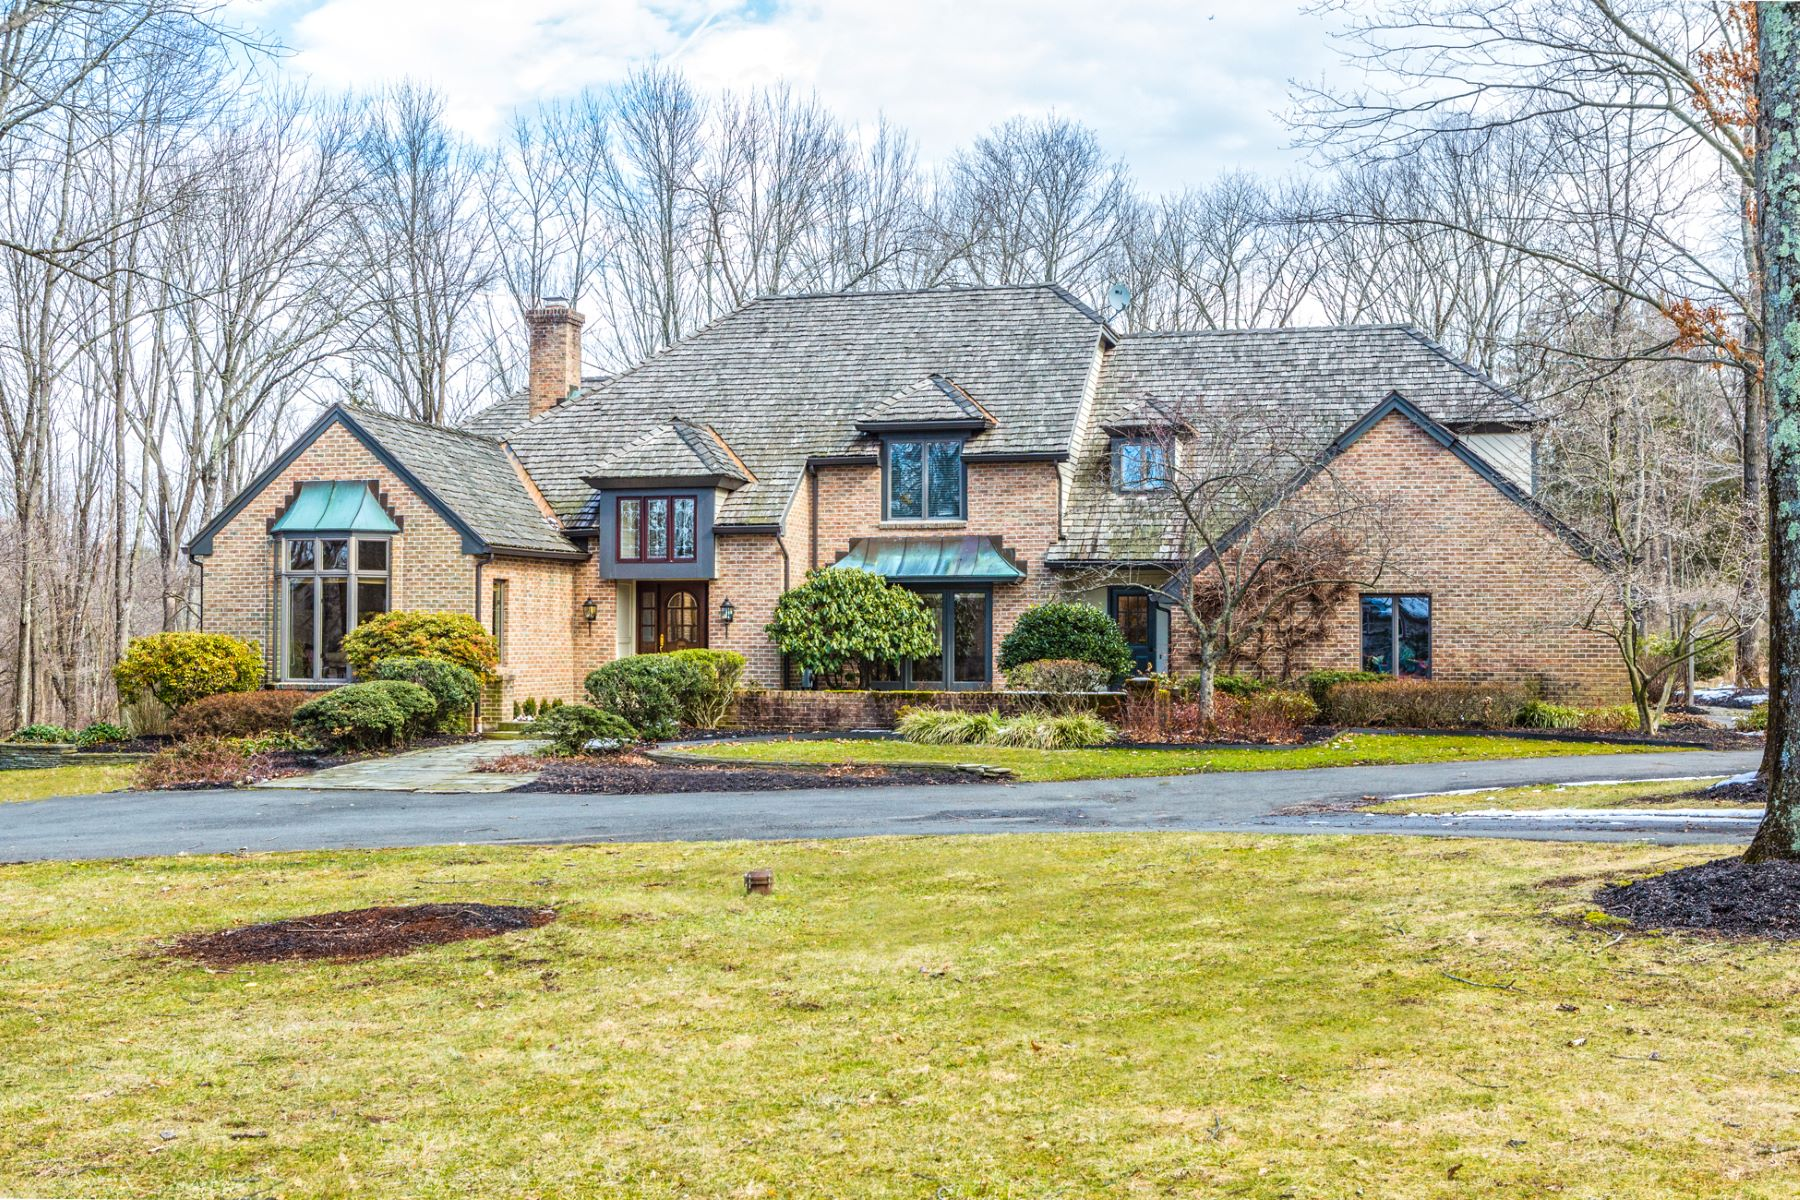 Casa Unifamiliar por un Venta en Bright Spaces and Breathtaking Design 7 Applewood Drive Hopewell, Nueva Jersey 08525 Estados UnidosEn/Alrededor: Hopewell Township